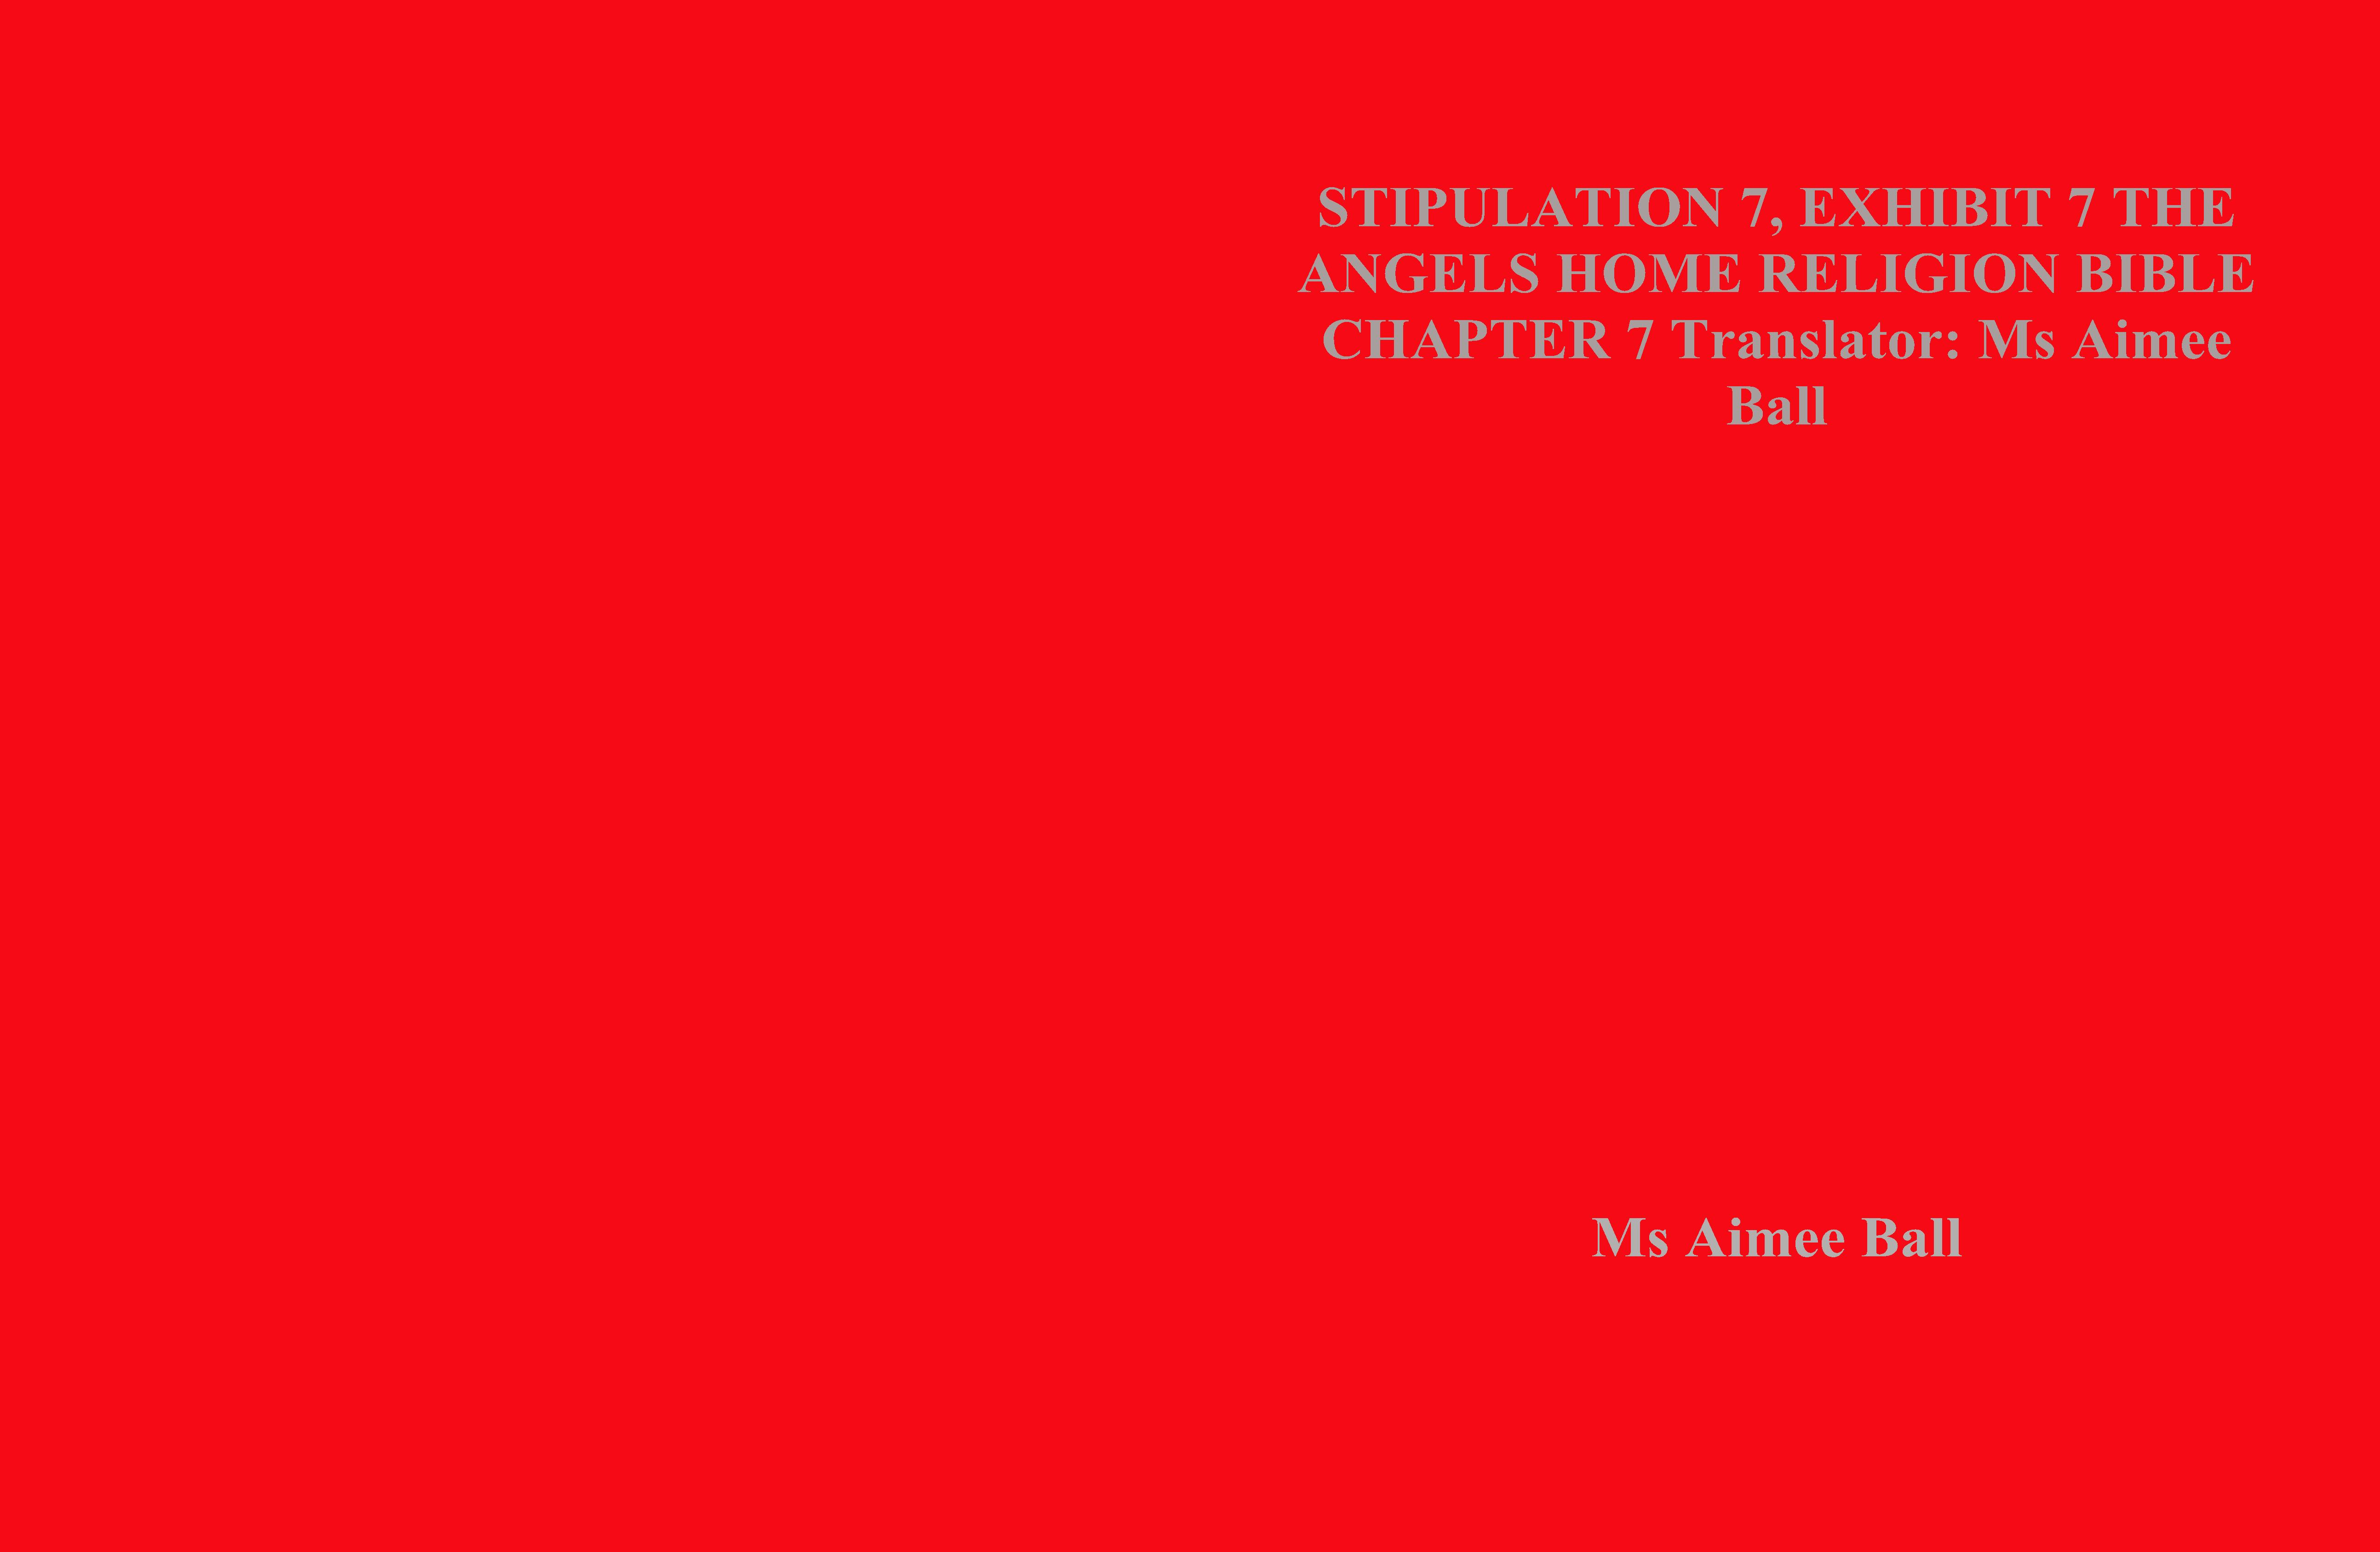 STIPULATION 7, EXHIBIT 7 THE ANGELS HOME RELIGION BIBLE CHAPTER 7 Translator: Ms Aimee Ball cover image